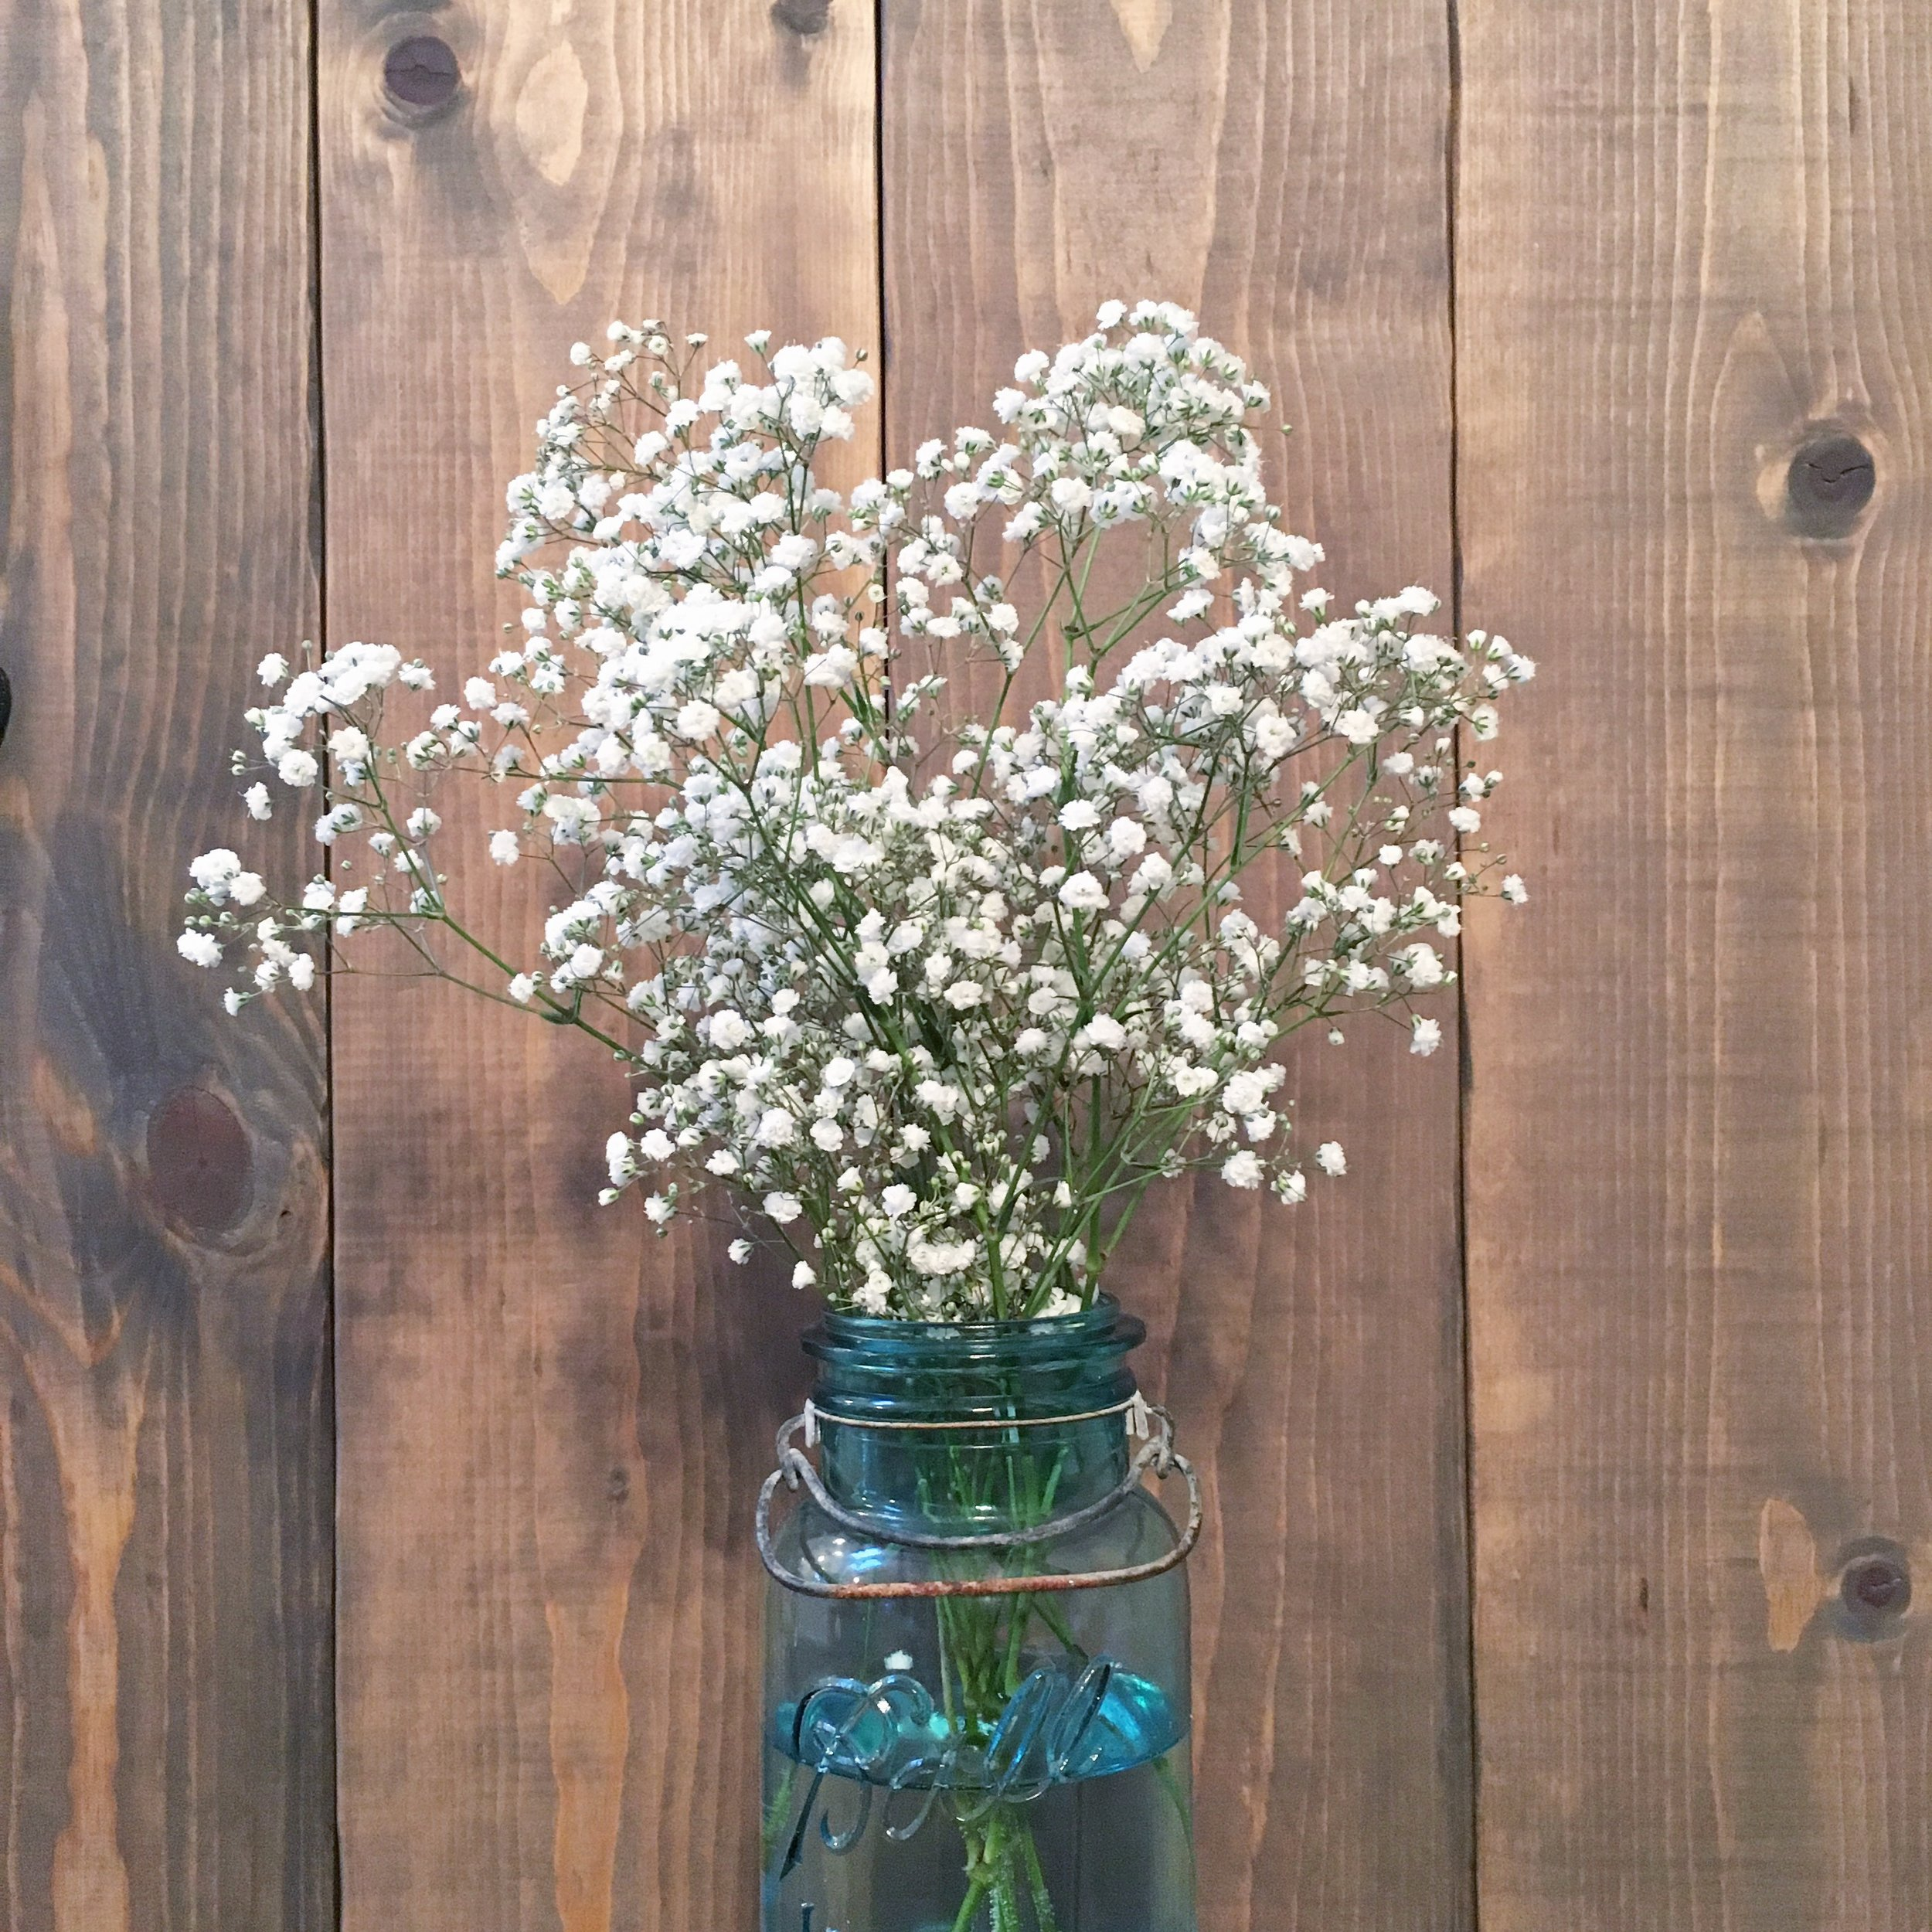 Sometimes you just need to buy yourself some baby's breath. Love the simplicity of these beauties!